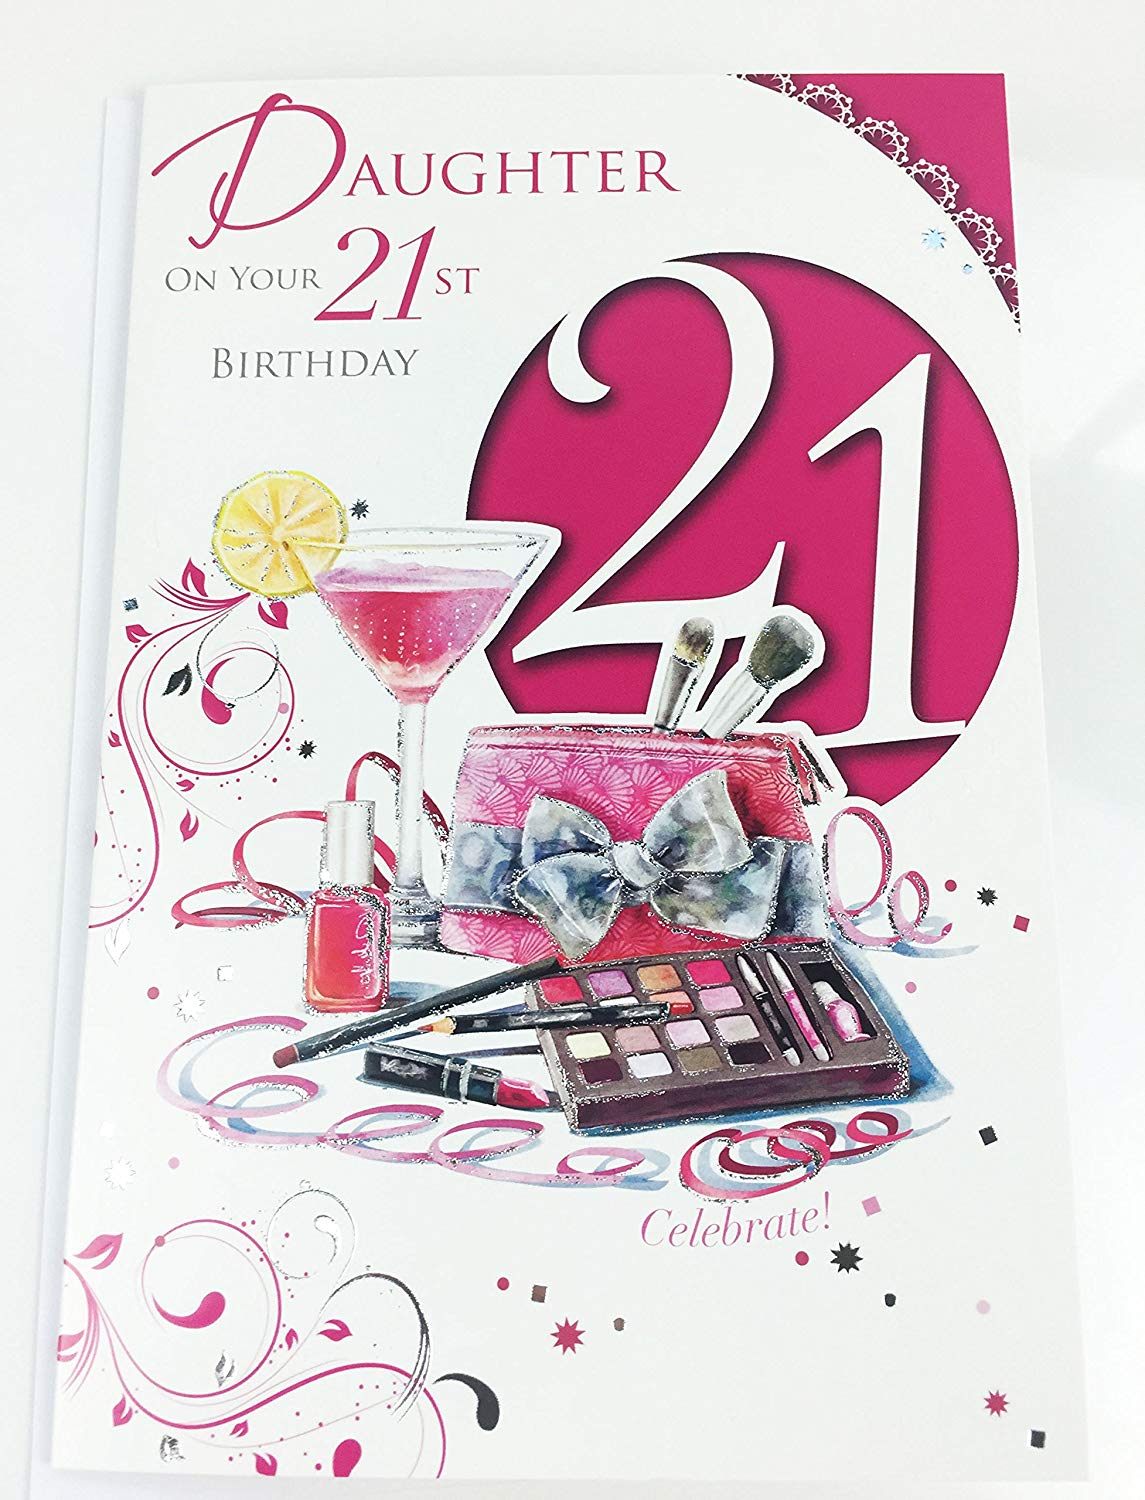 happy 21st birthday daughter ; 91BrK55r2NL